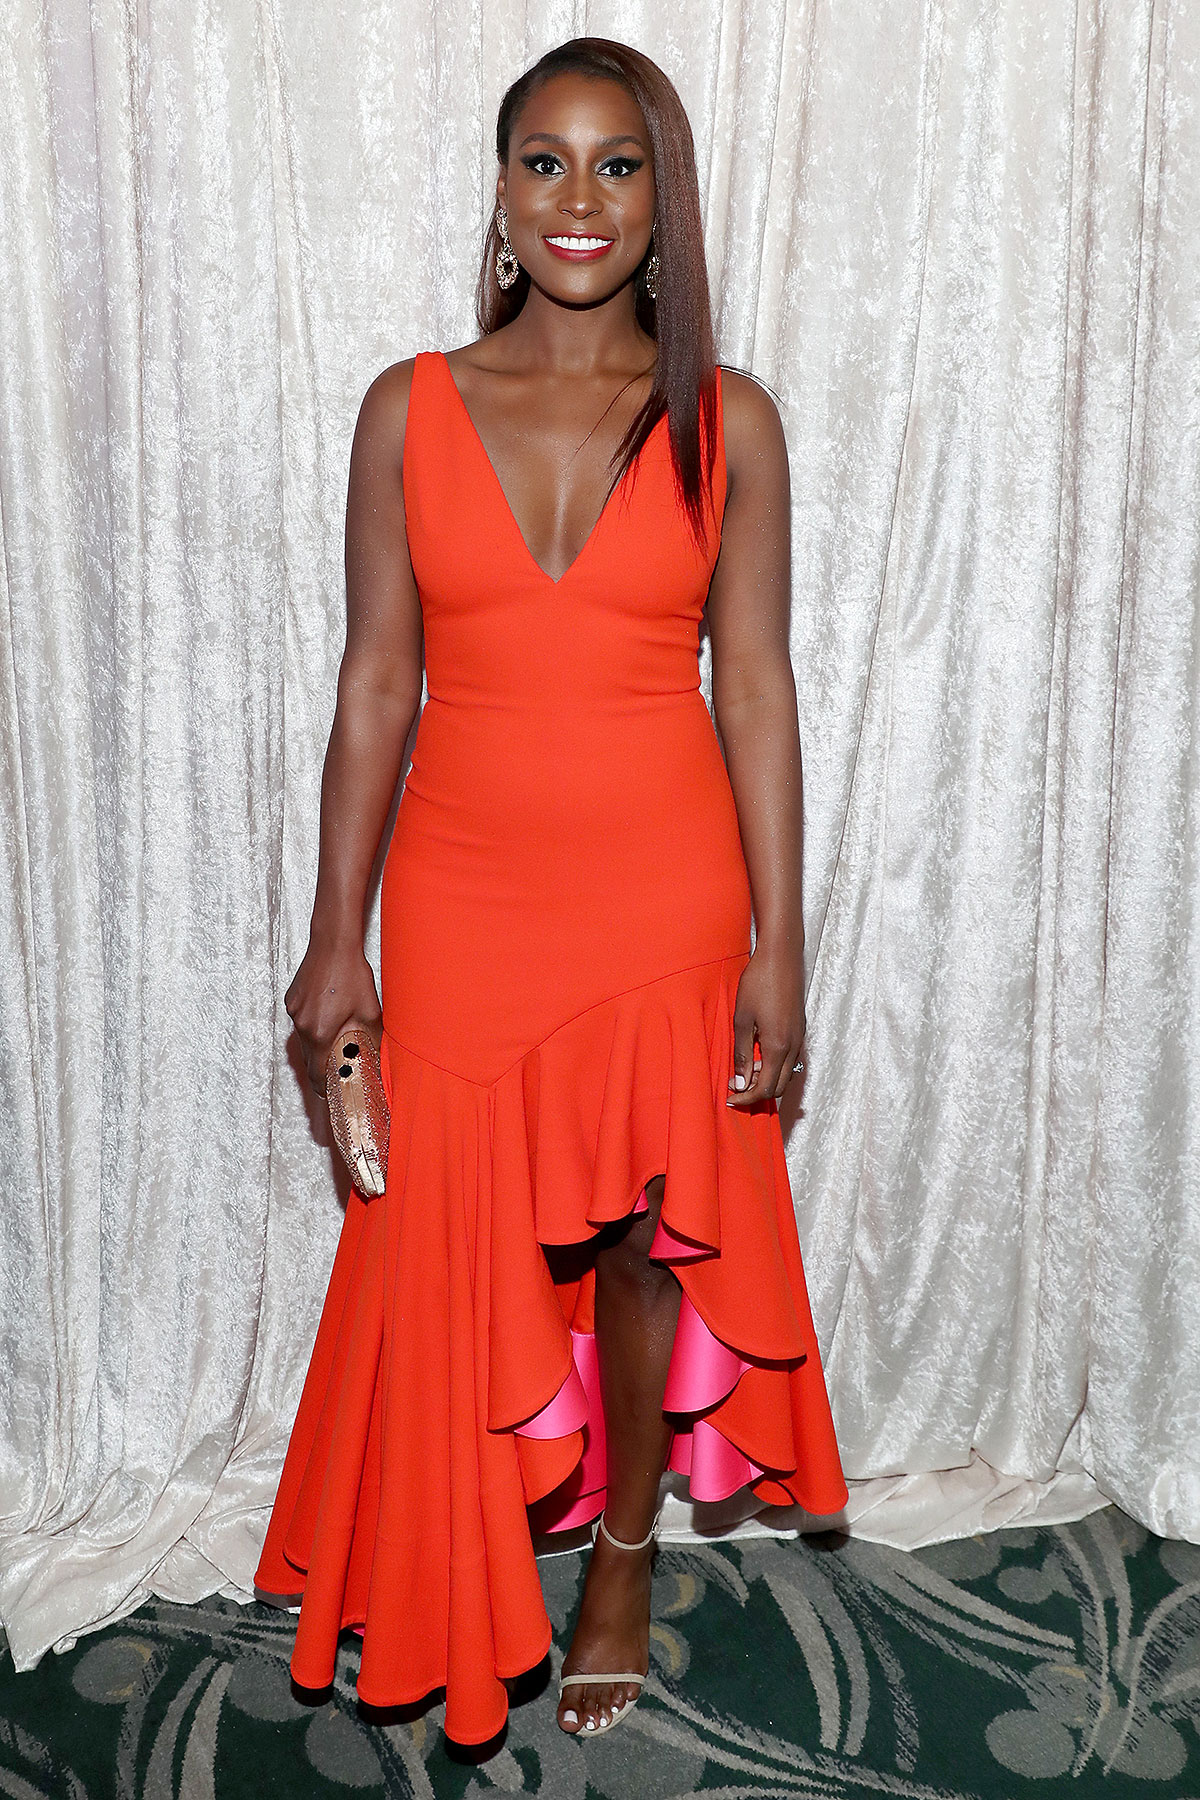 Issa Rae attends the 2020 13th Annual ESSENCE Black Women in Hollywood Luncheon at Beverly Wilshire, A Four Seasons Hotel on February 06, 2020 in Beverly Hills, California.